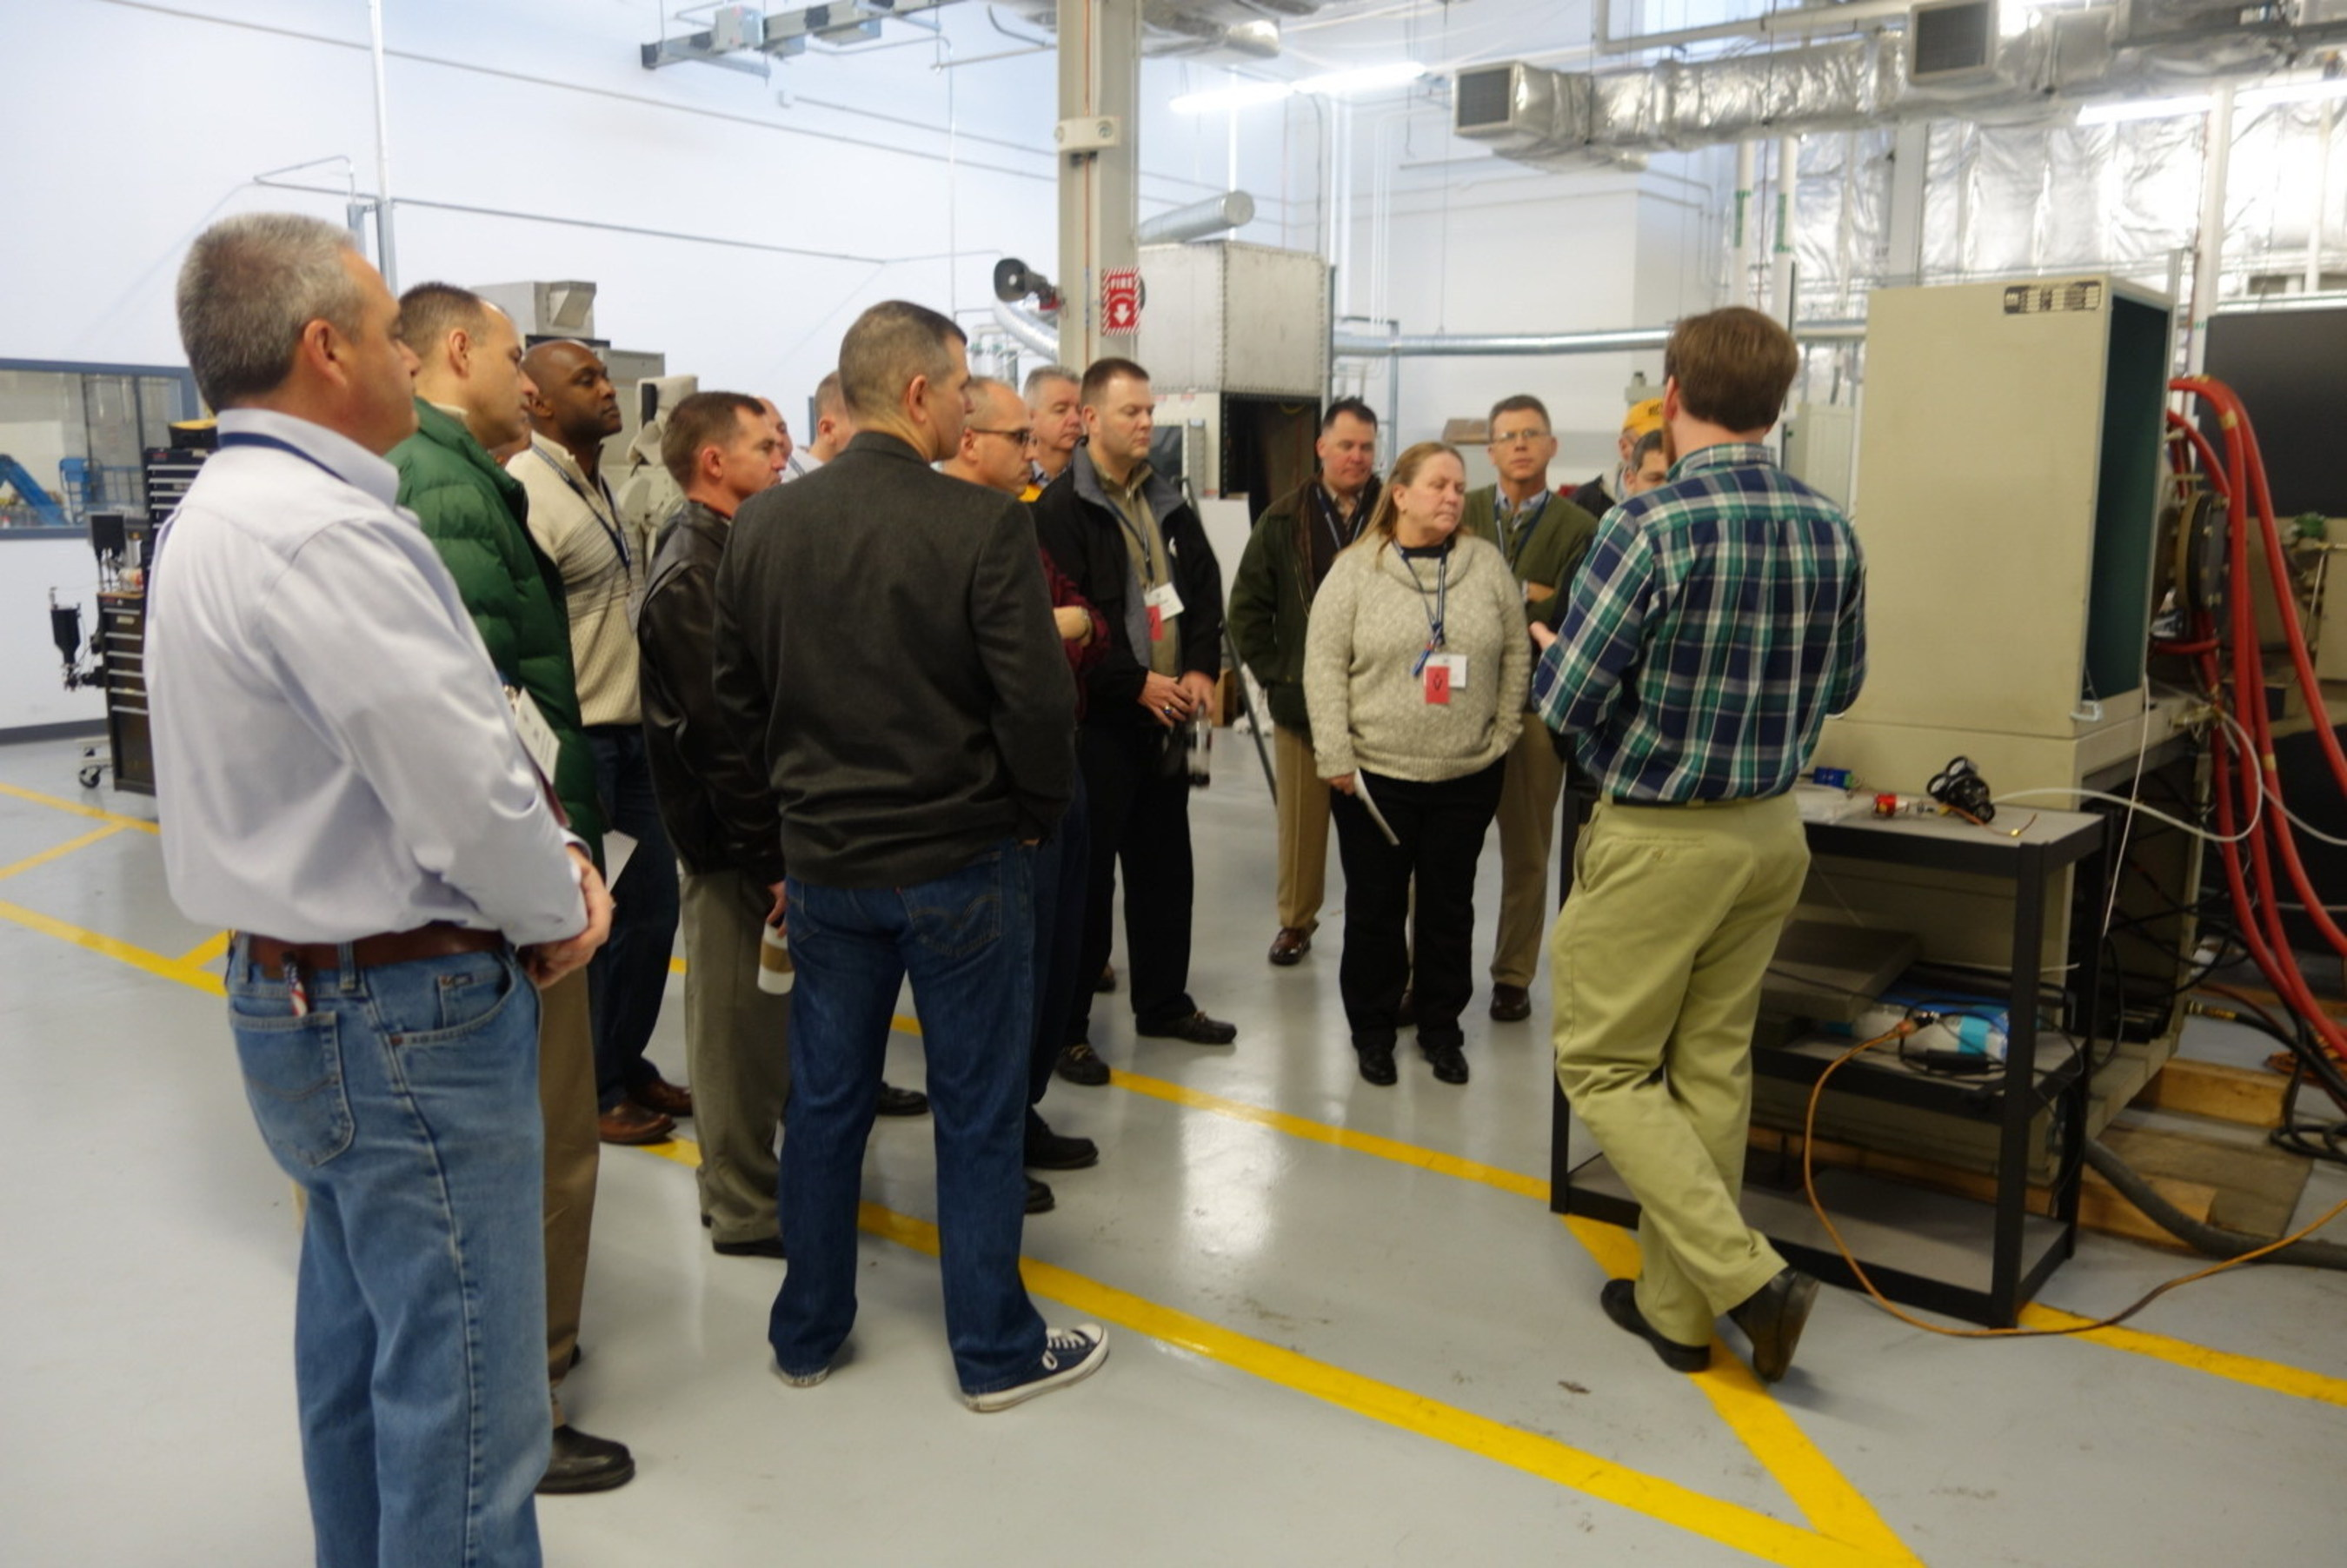 Depot and Arsenal Executive Leadership Program (DAELP) students touring Quad Cities Manufacturing Laboratory. ...